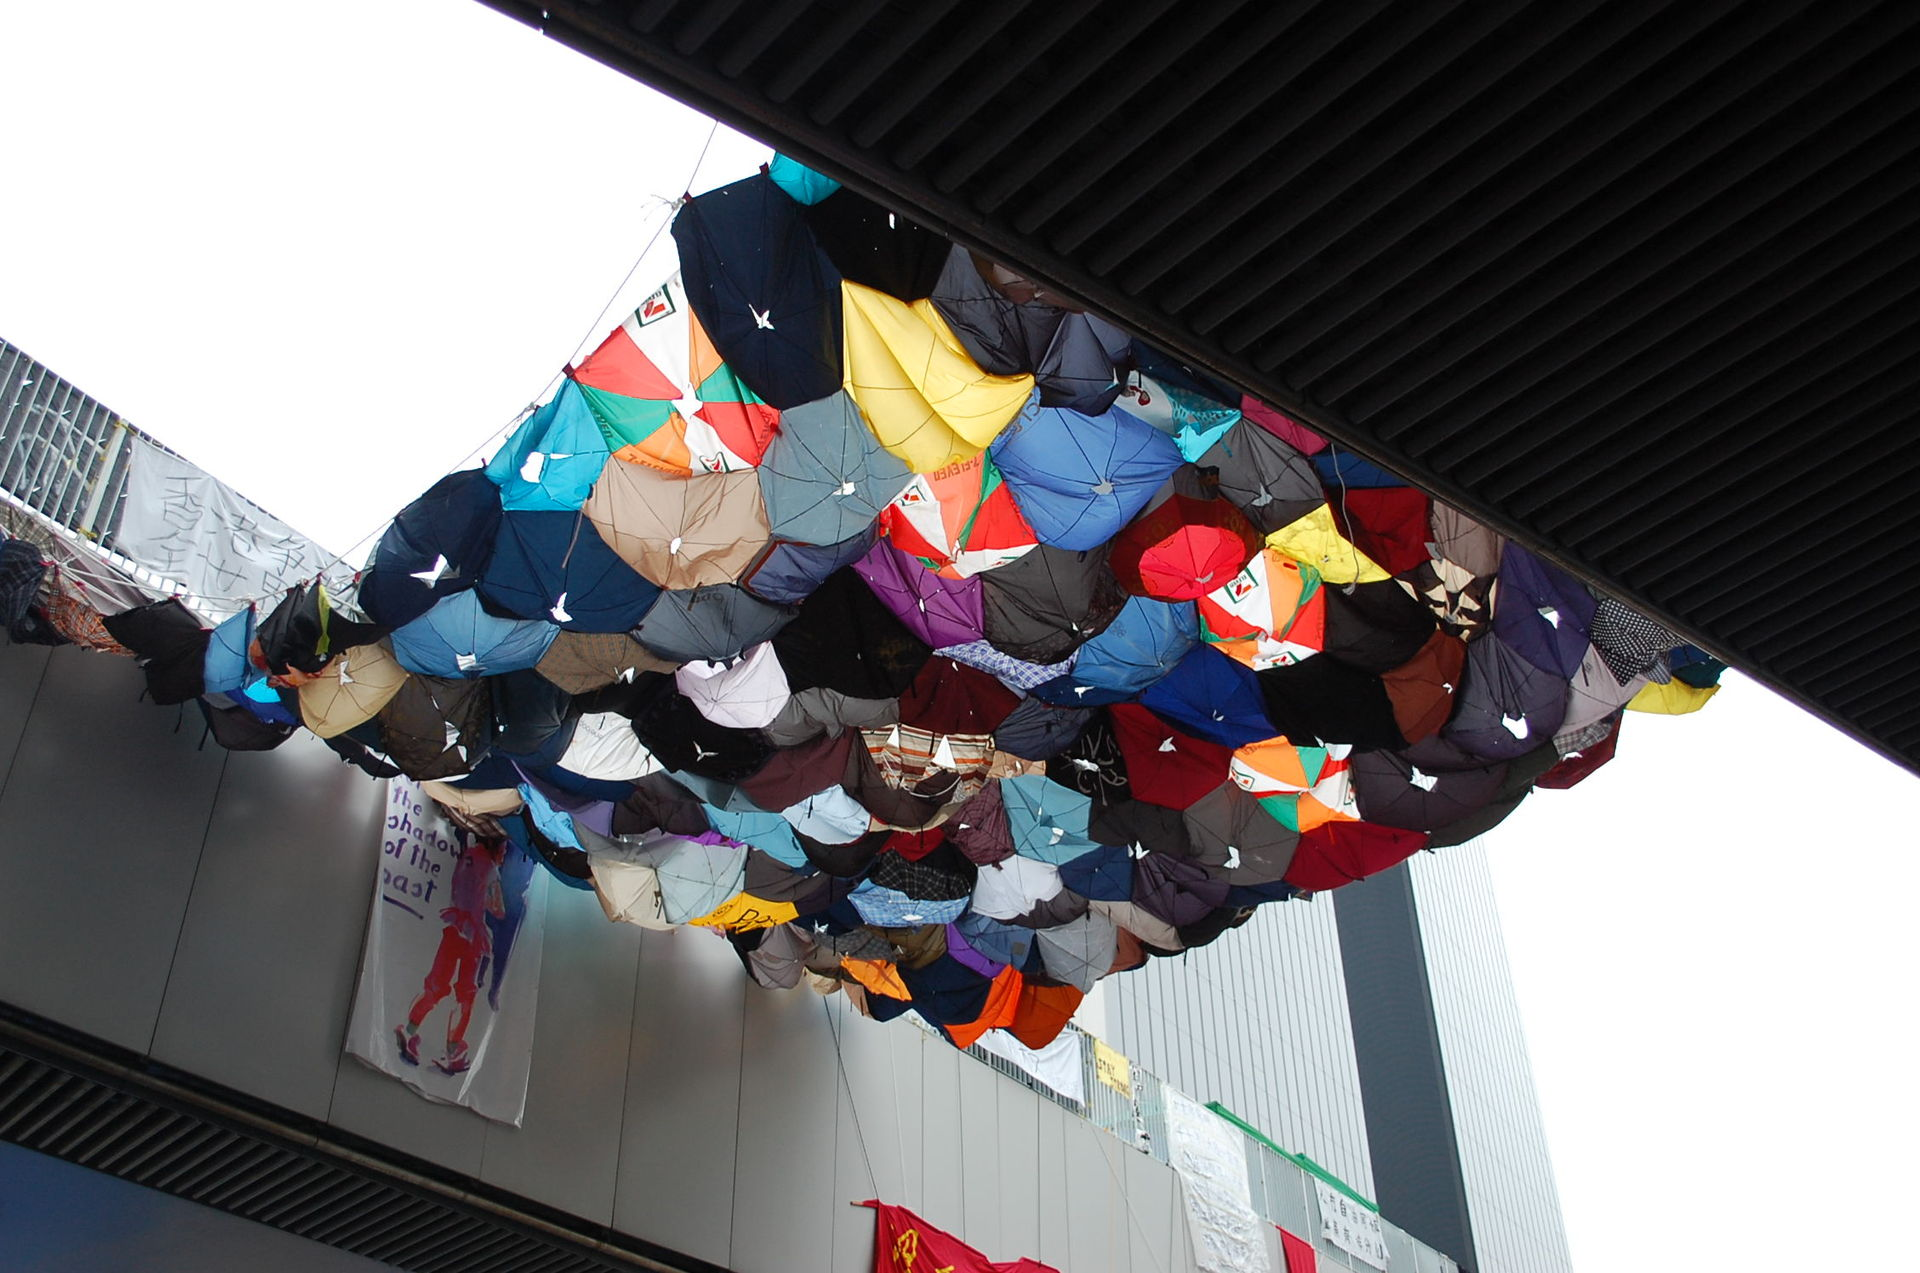 Umbrellas hanging between two footbridges in Hong Kong.